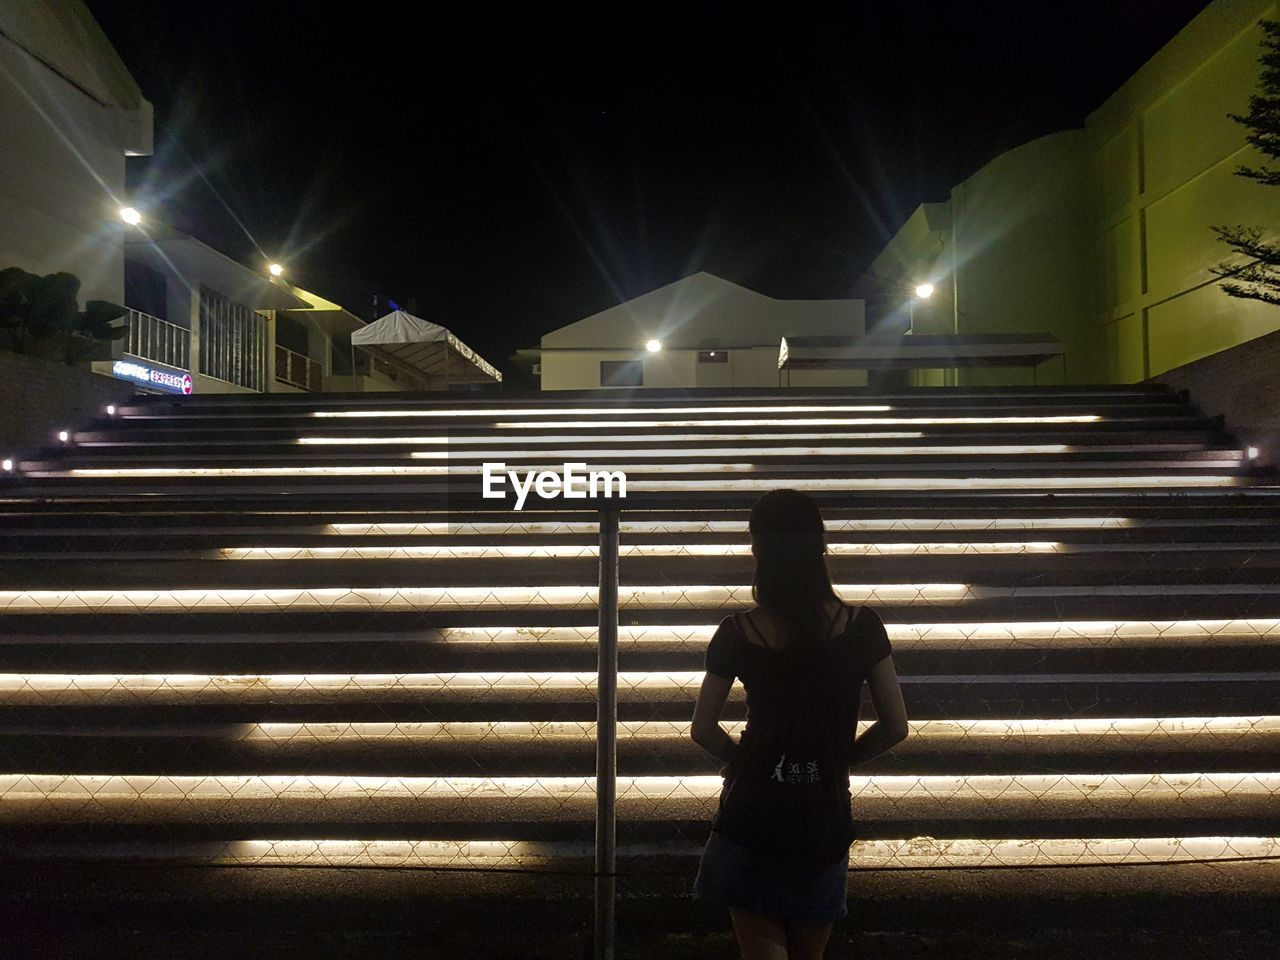 illuminated, night, real people, one person, street, architecture, city, lighting equipment, street light, road, nature, rear view, three quarter length, transportation, lifestyles, standing, light - natural phenomenon, leisure activity, outdoors